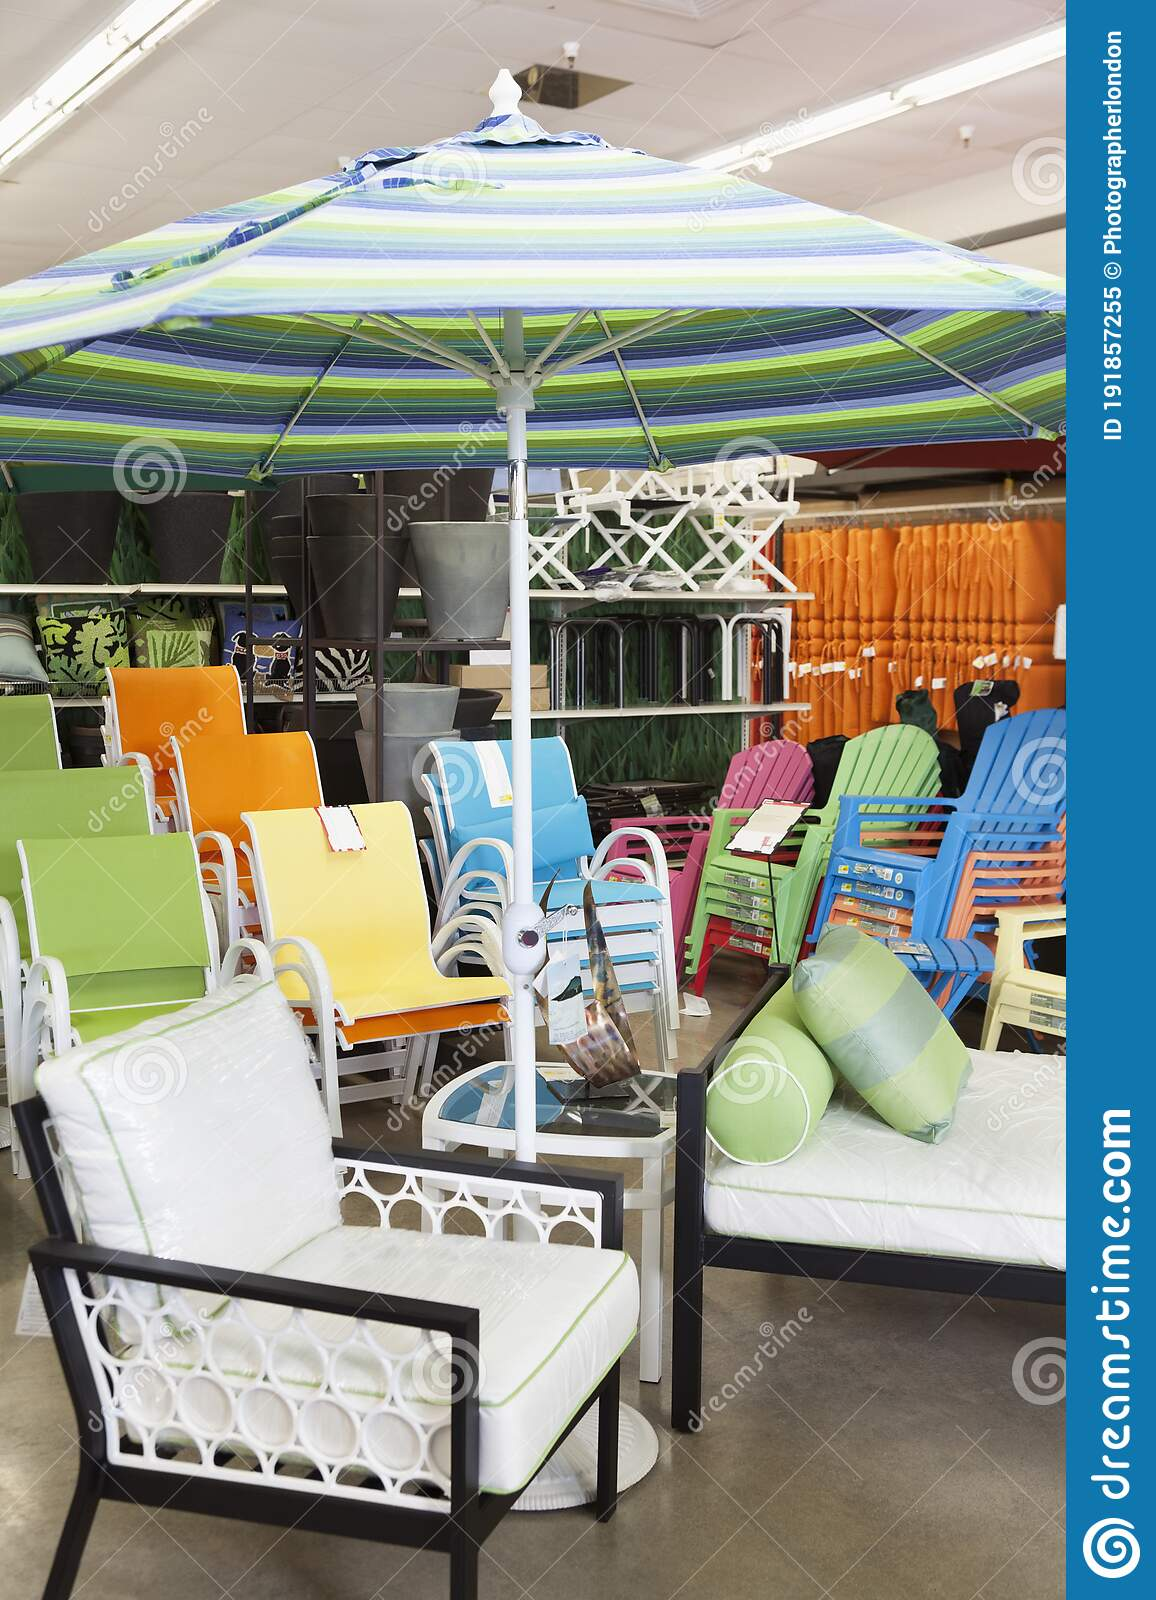 seating furniture and patio umbrella for sale in garden furniture store stock image image of fishing location 191857255